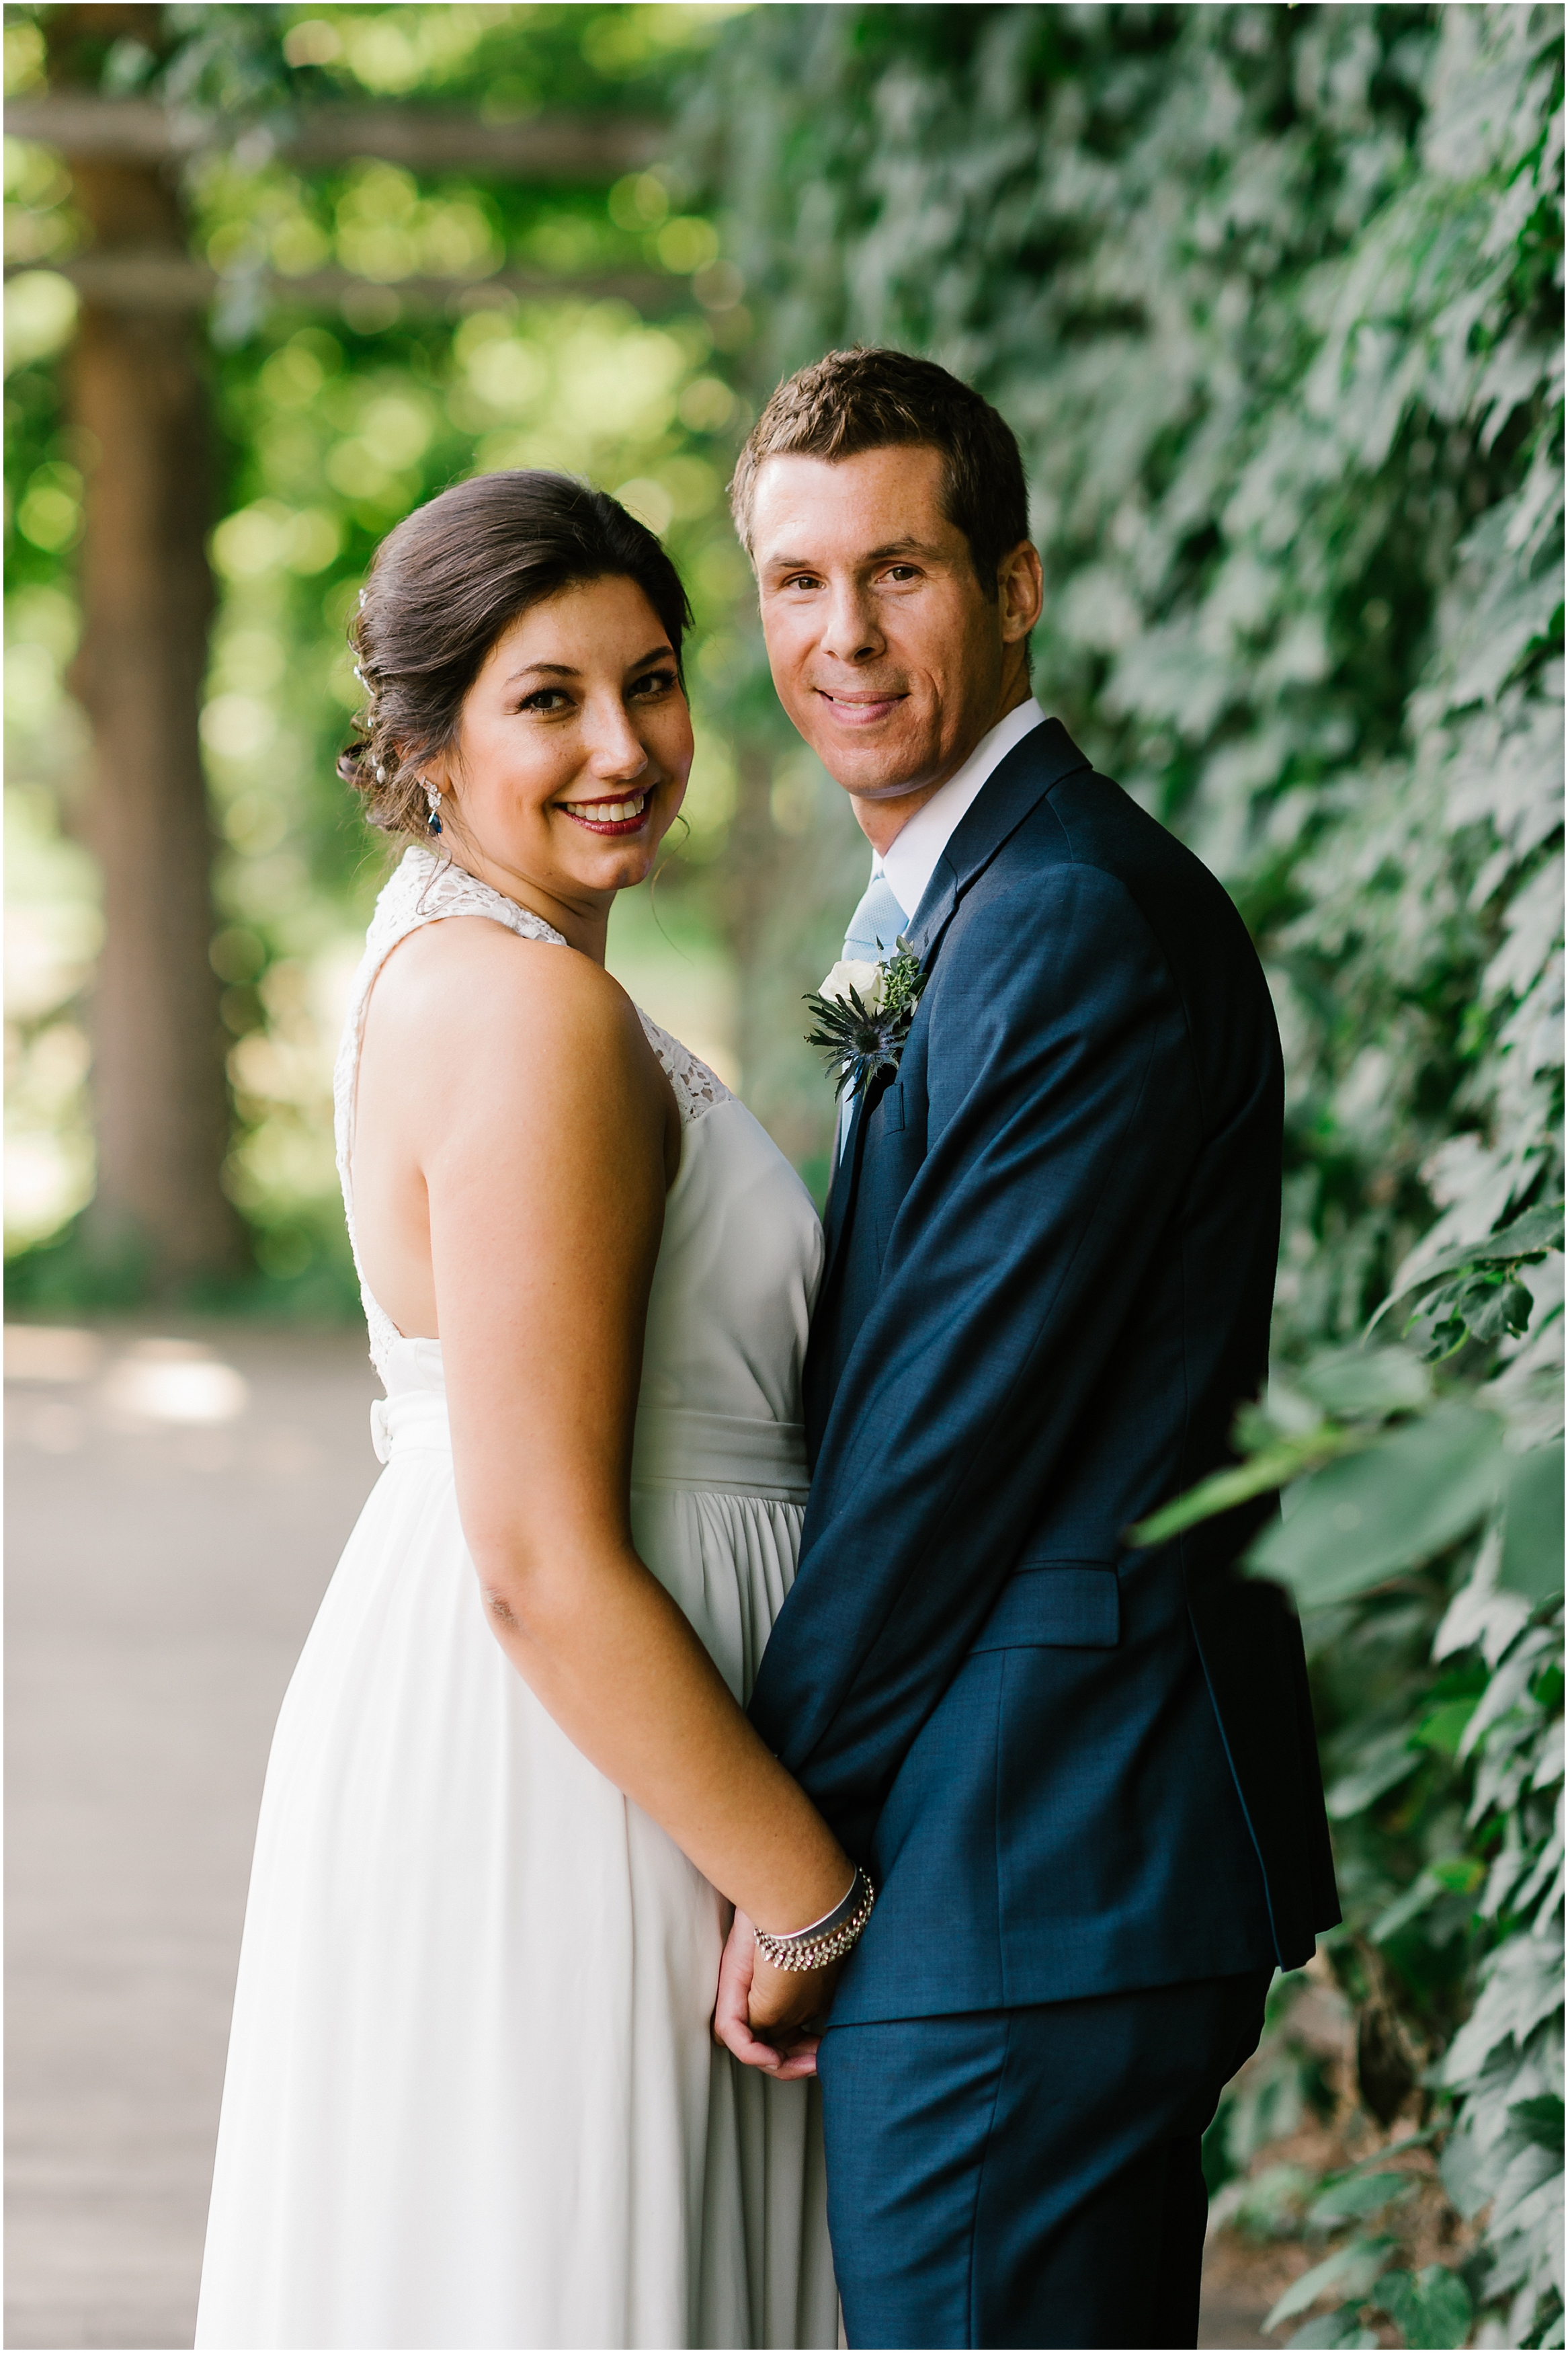 Rebecca Shehorn Photography Indianapolis Wedding Photographer Just Pop In Wedding_0642.jpg